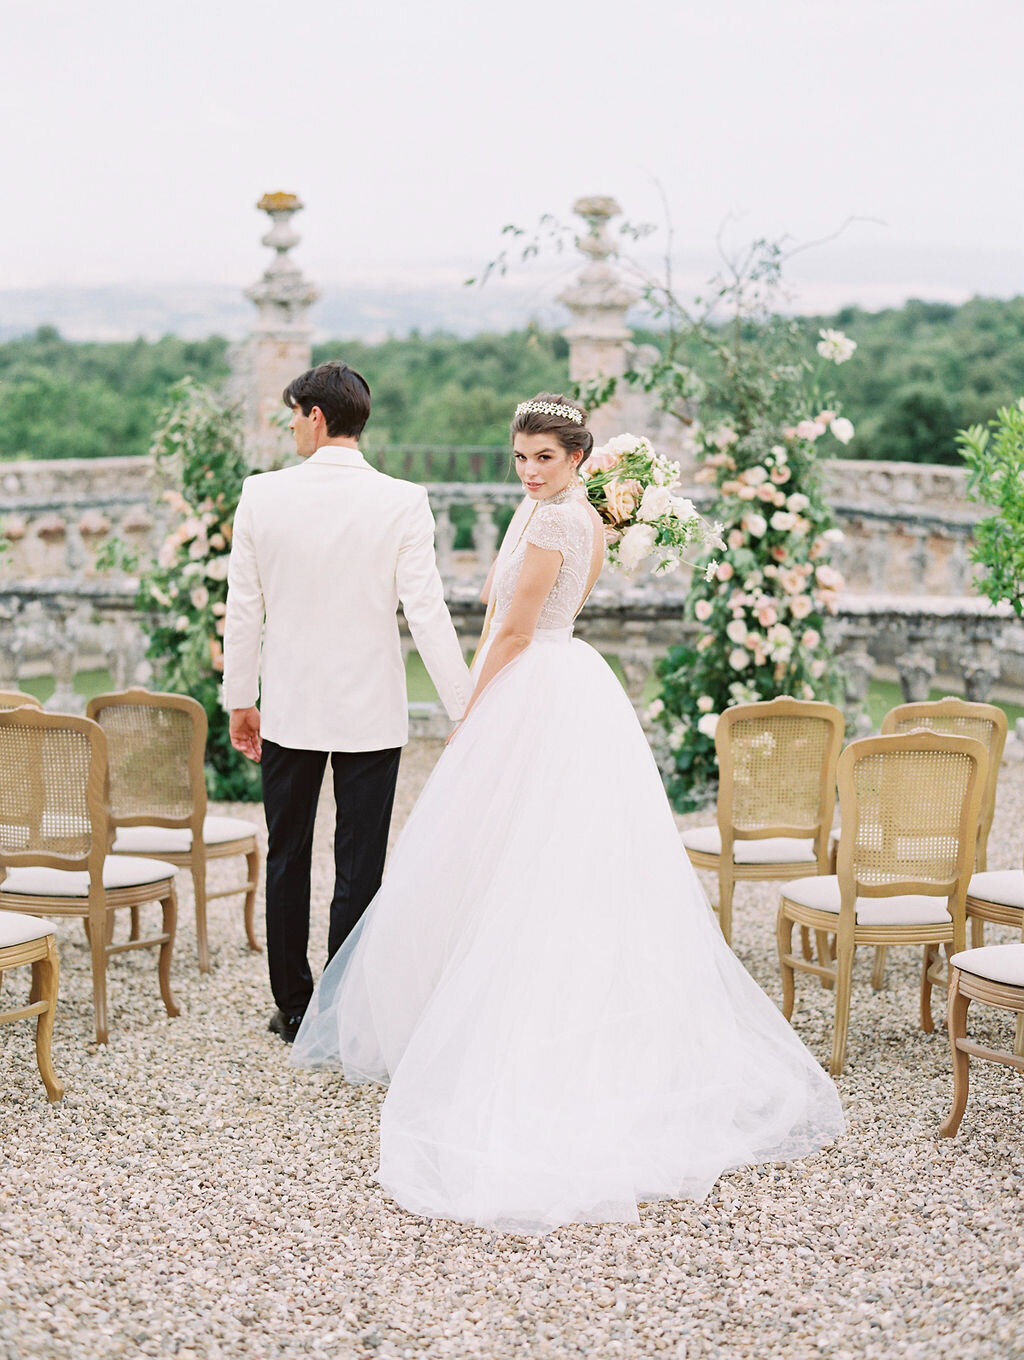 Trine_Juel_hair_and_makeupartist_wedding_Italy_Castello_Di_CelsaQuicksallPhotography_CastelloDiCelsa0237